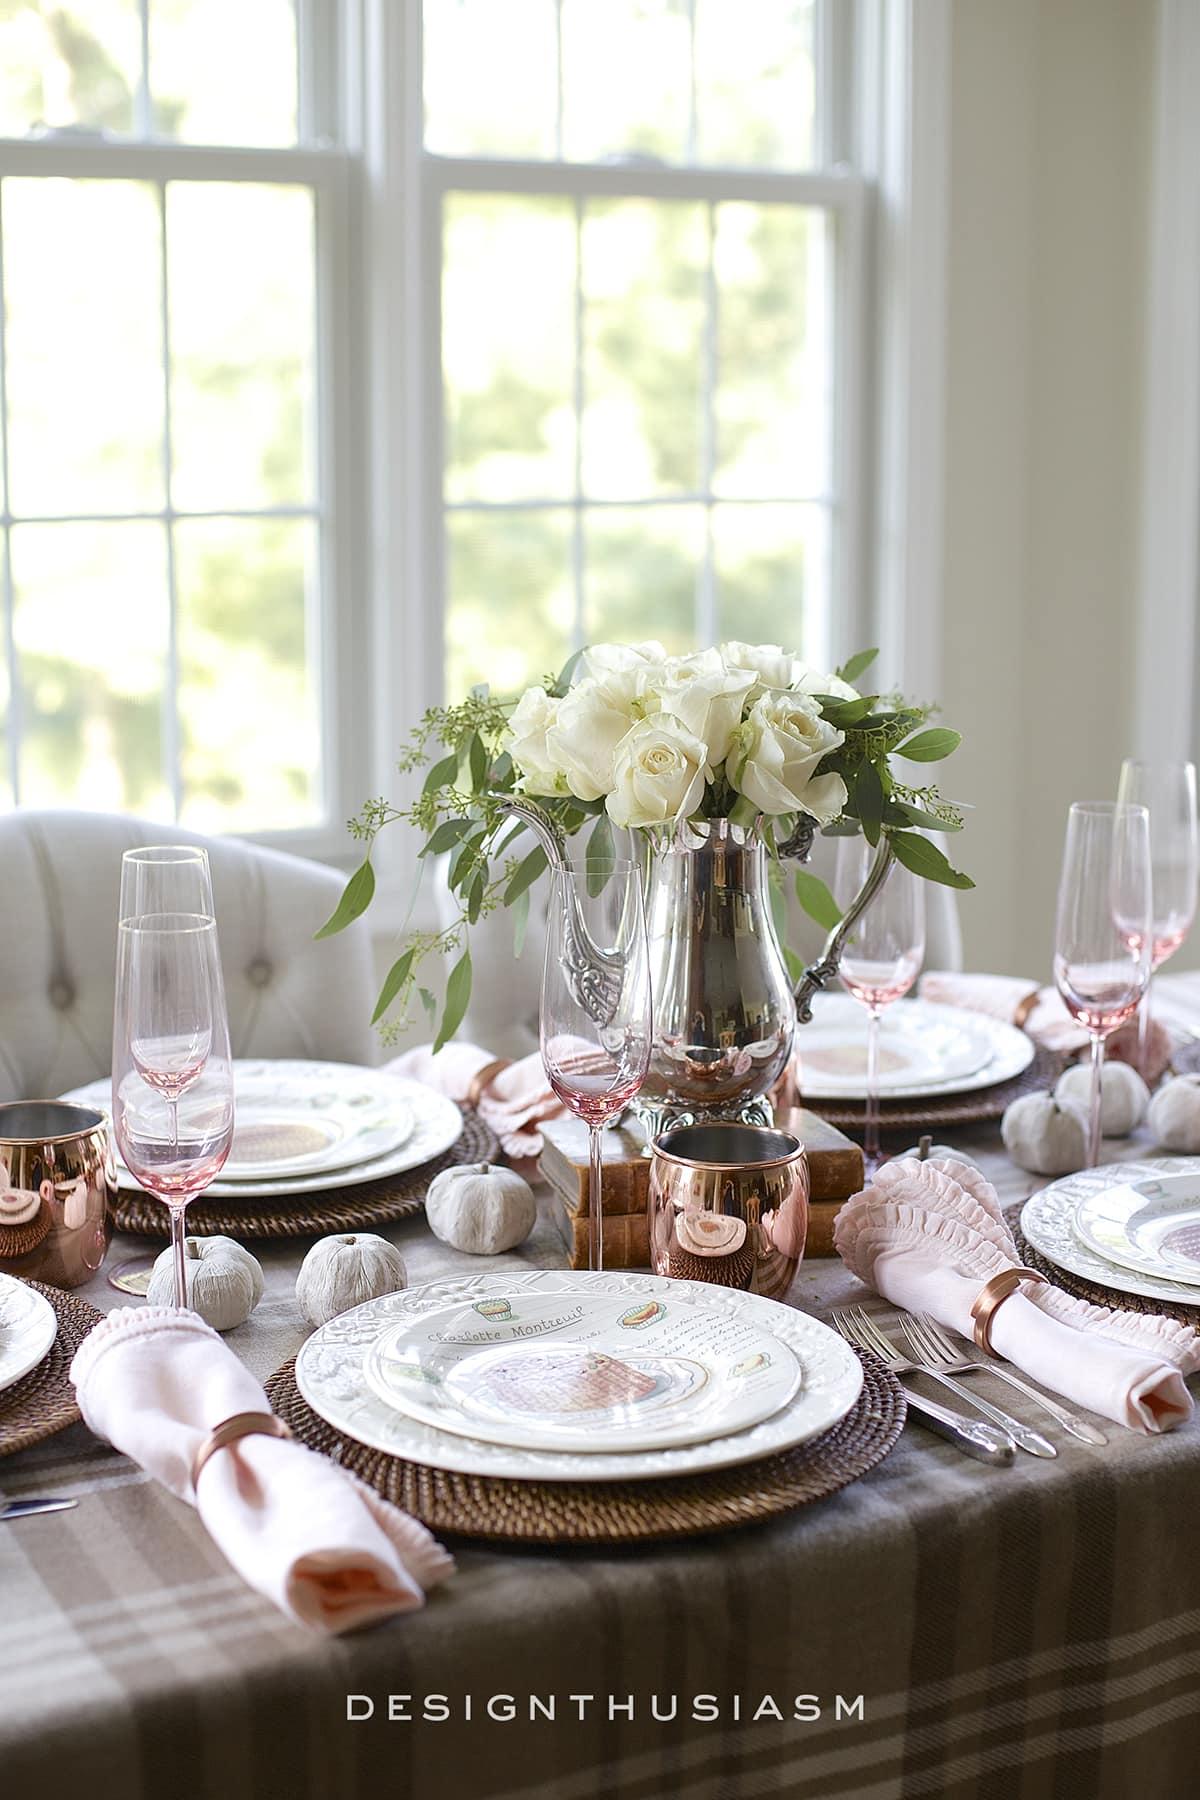 A Soft and Neutral Fall Table Setting | Designthusiasm.com